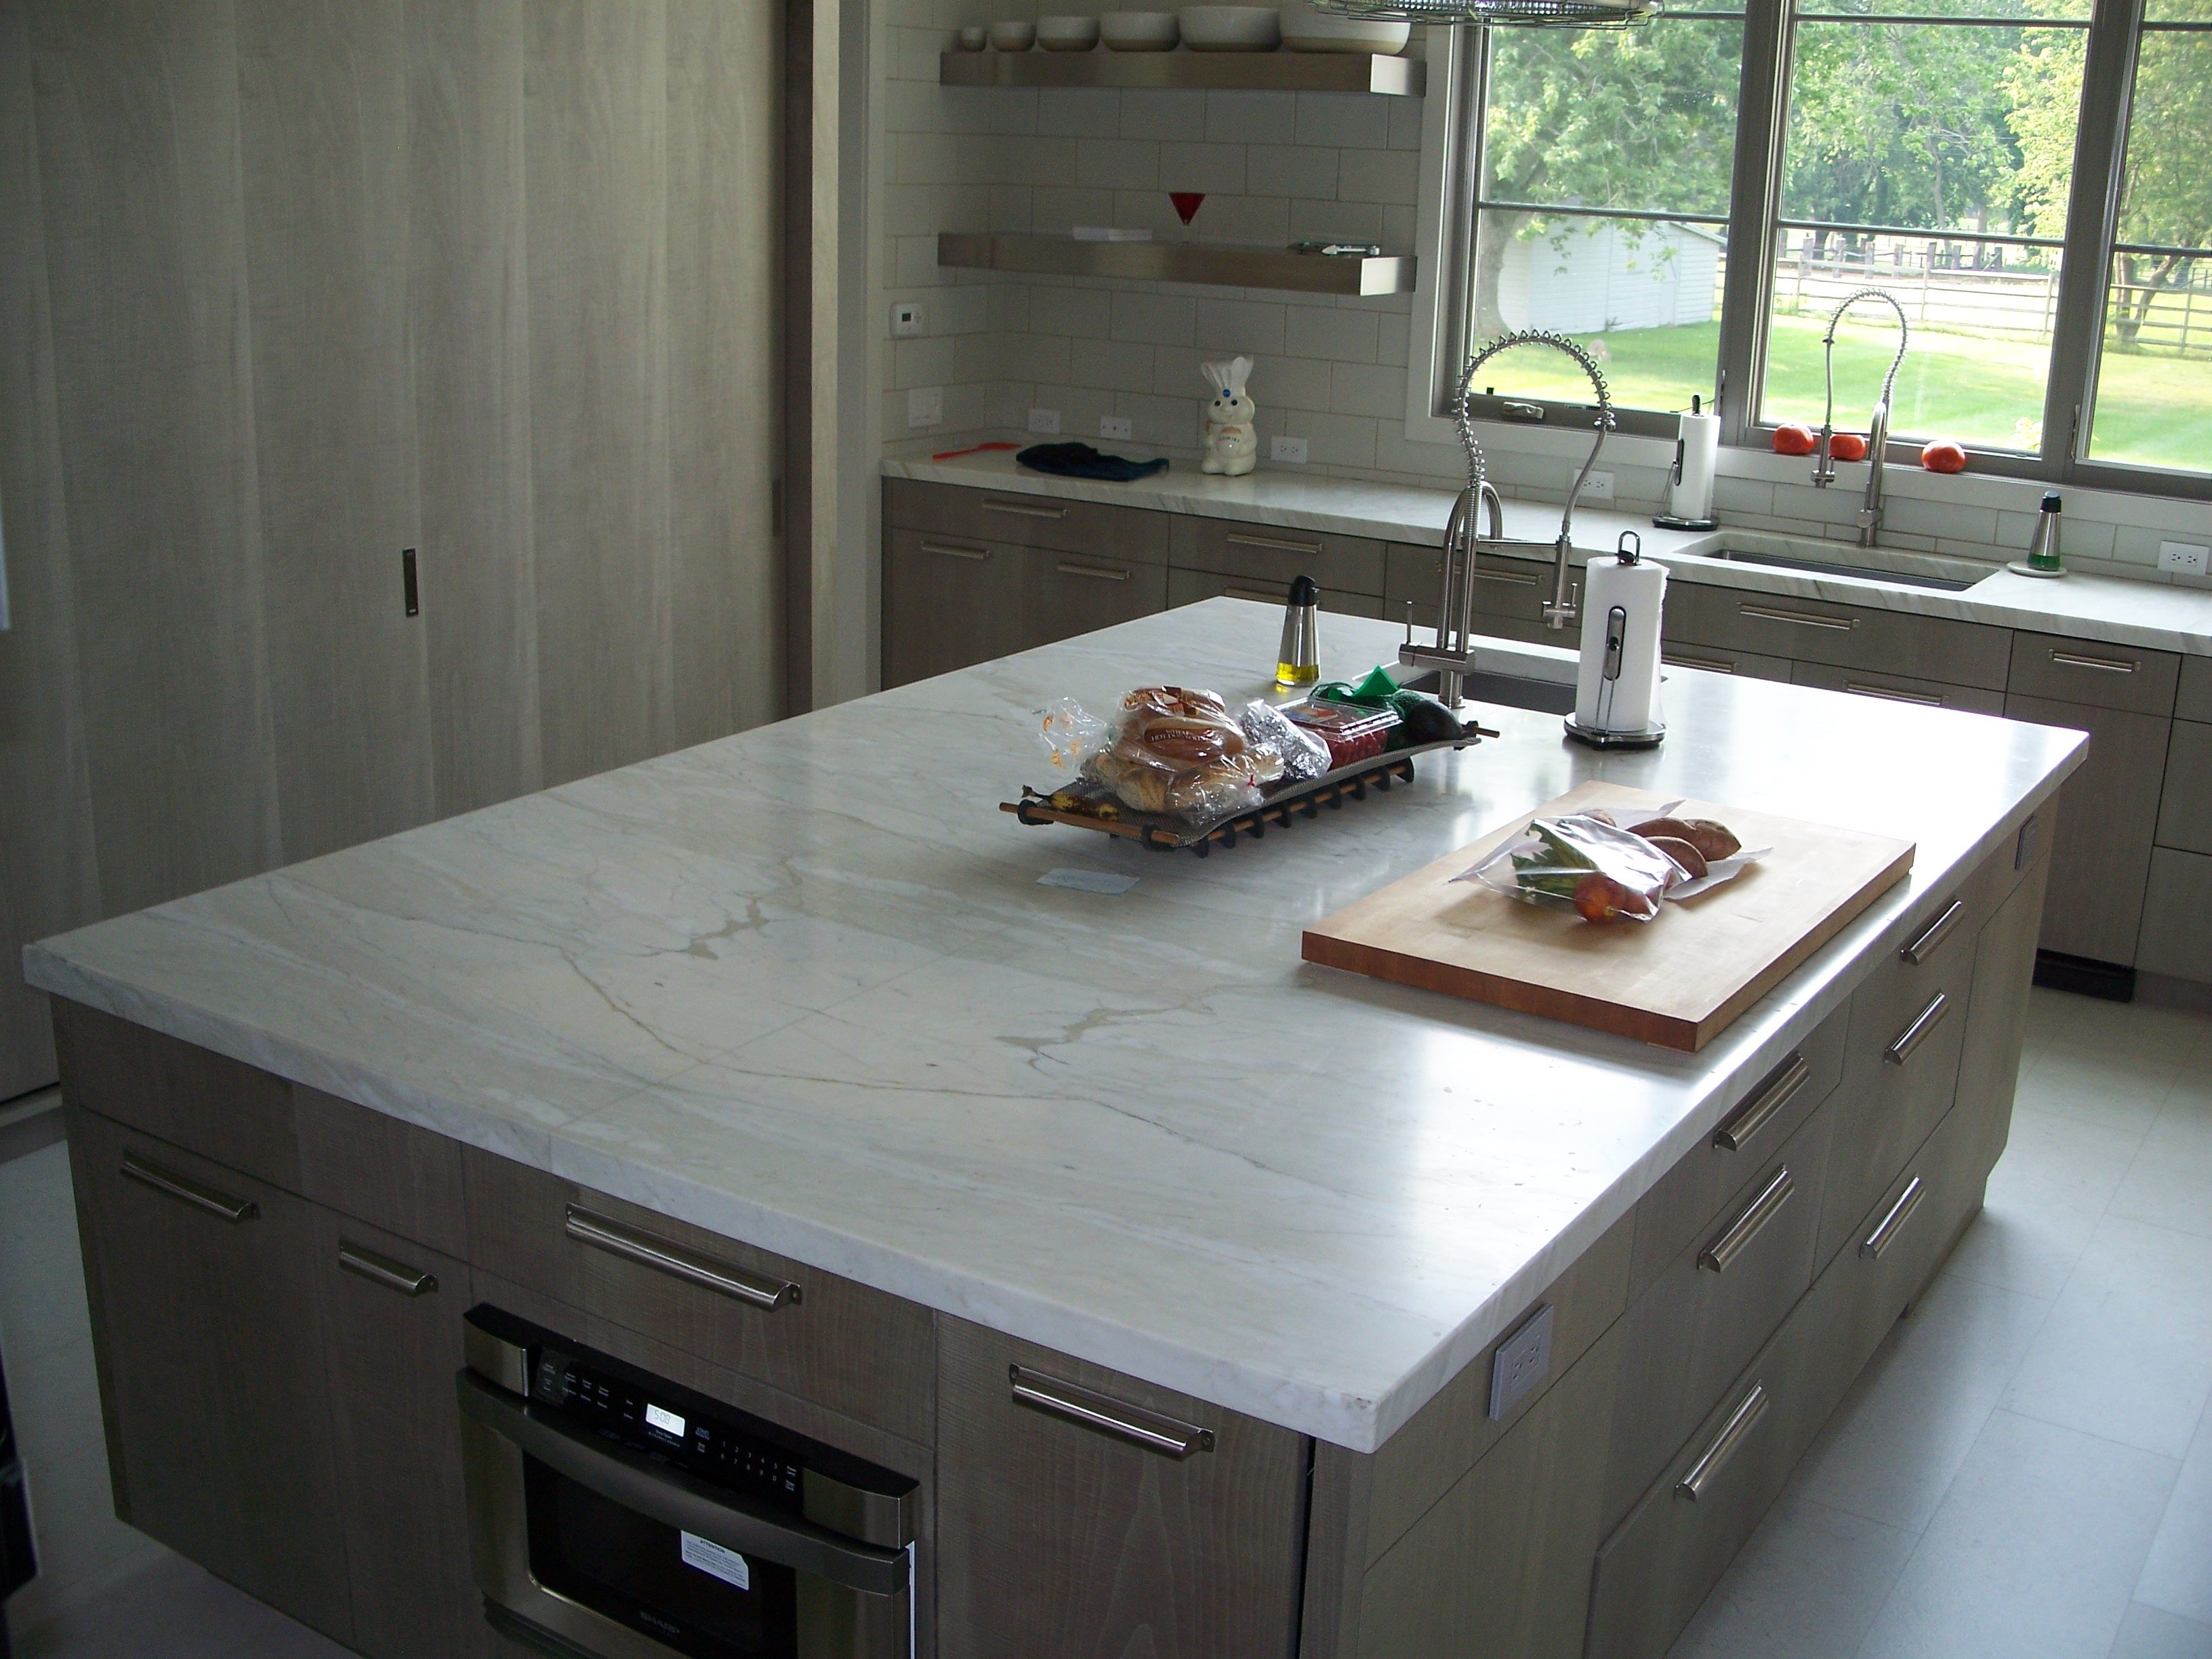 2 Thickness Calacatta Gold Honed Finish Marble Island With Bookmatched Seam Down Center